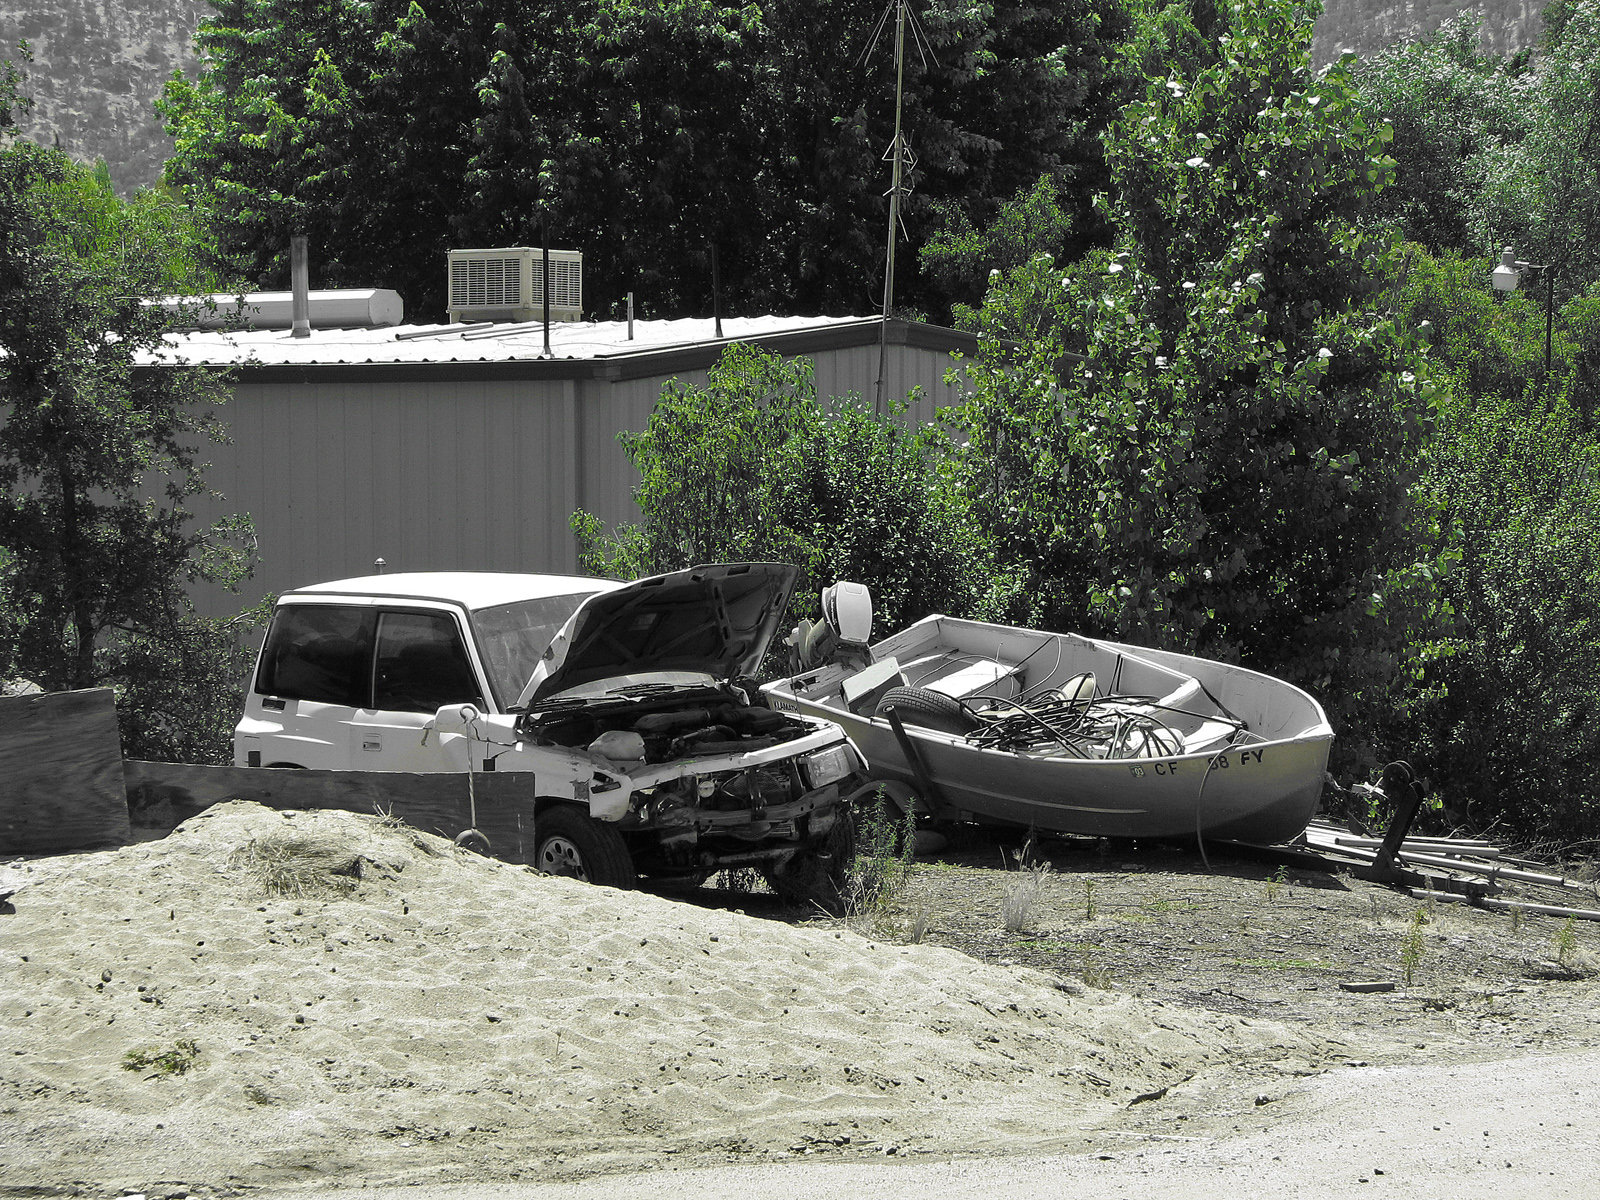 Double Damage, Accident, Boat, Bspo06, Car, HQ Photo